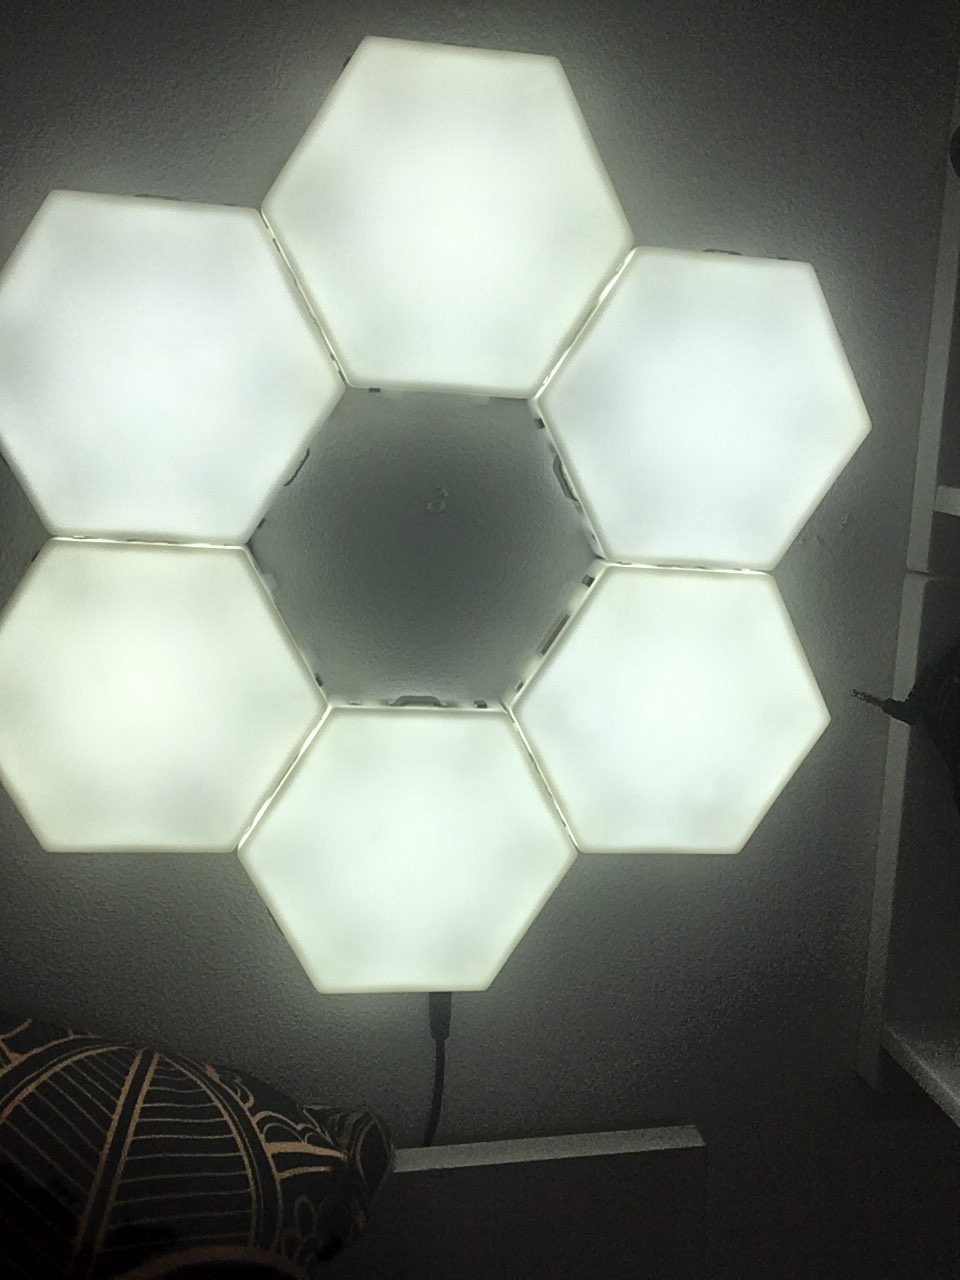 Touch Sensitive LED Light - Visual Stimulation - brightautism photo review